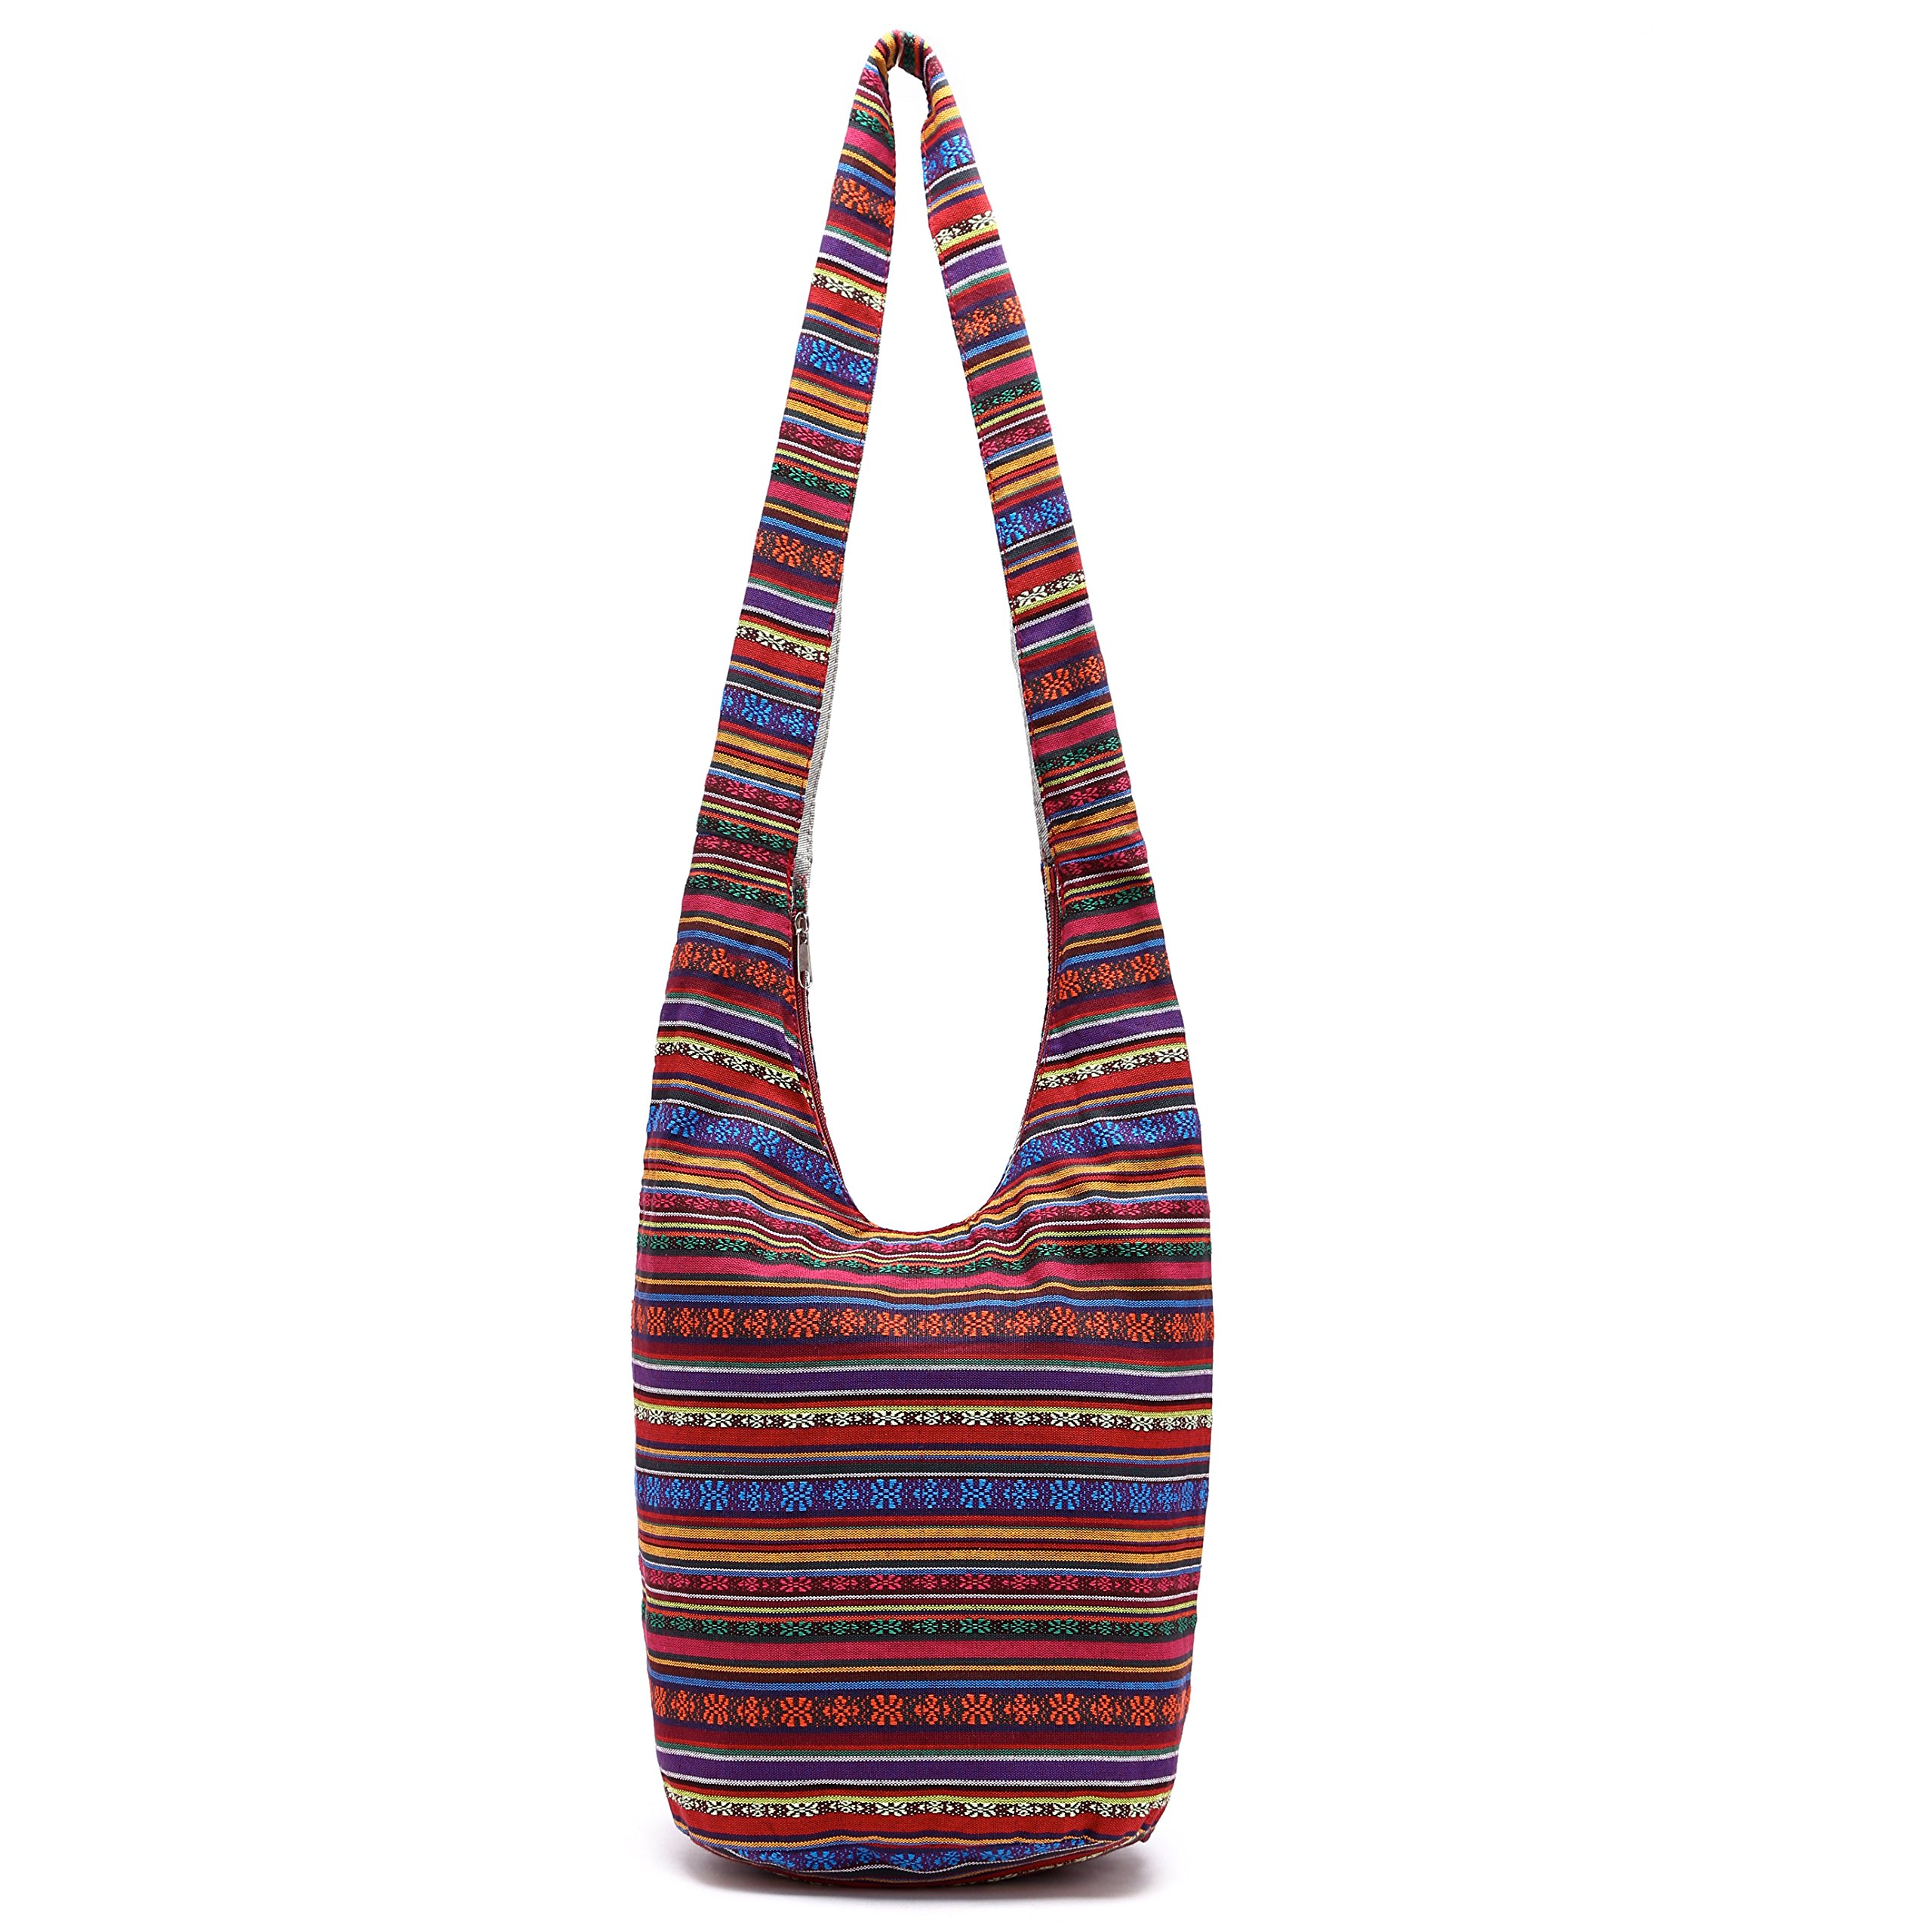 MIANZI Women Hand Fashion canvas Crossbody Bags Cotton Bohemian Animal Prints Hobo Bags (red)